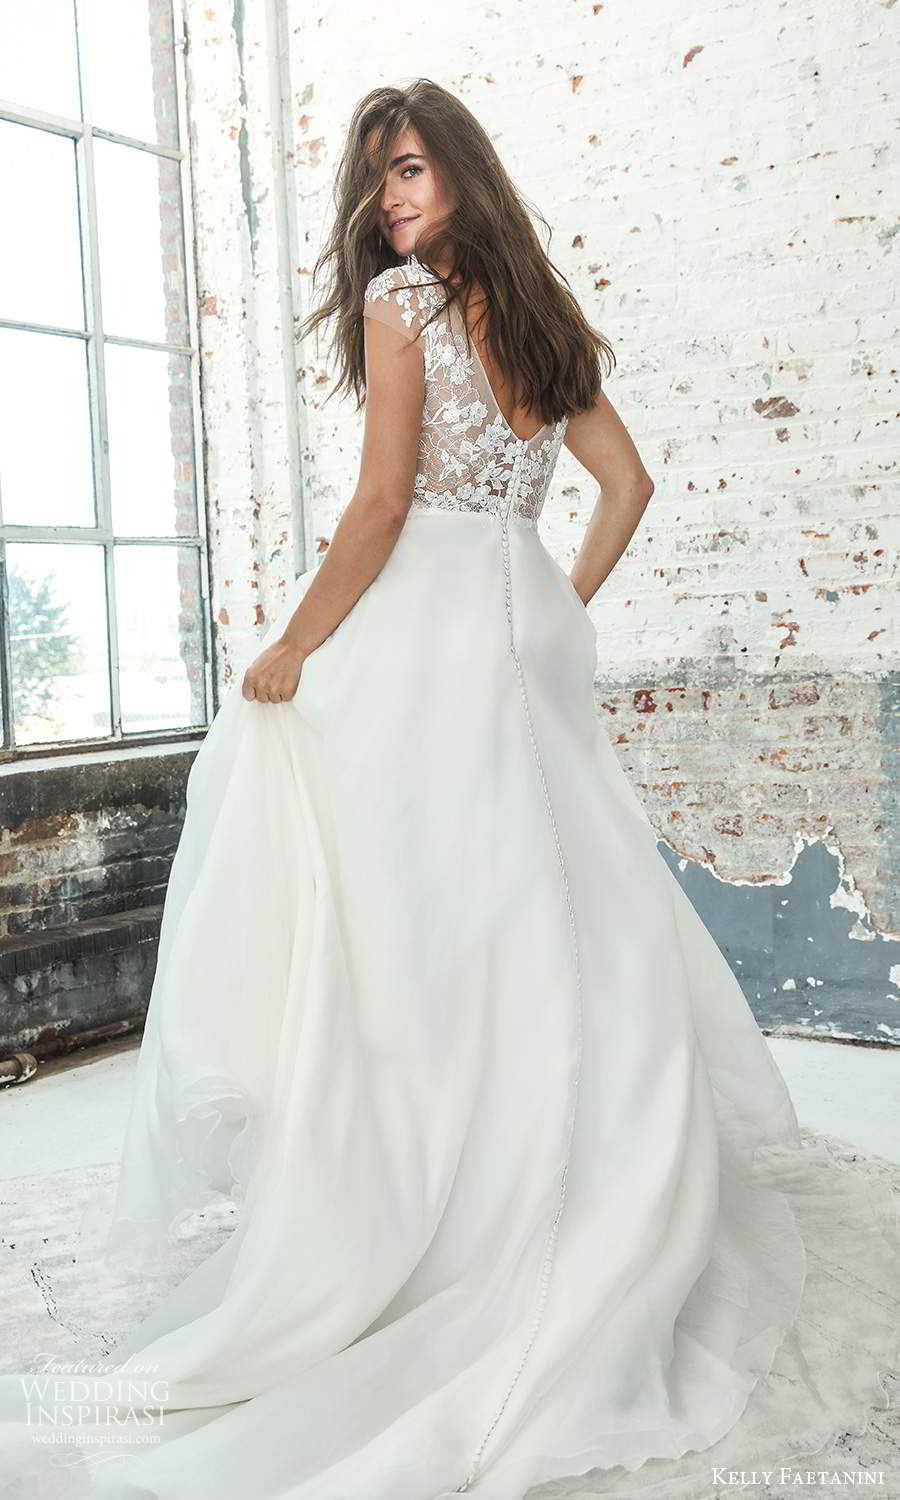 kelly faetanini 2021 bridal sheer cap sleeves plunging v neckline embellished lace bodice a line ball gown wedding dress chapel train (2) bv